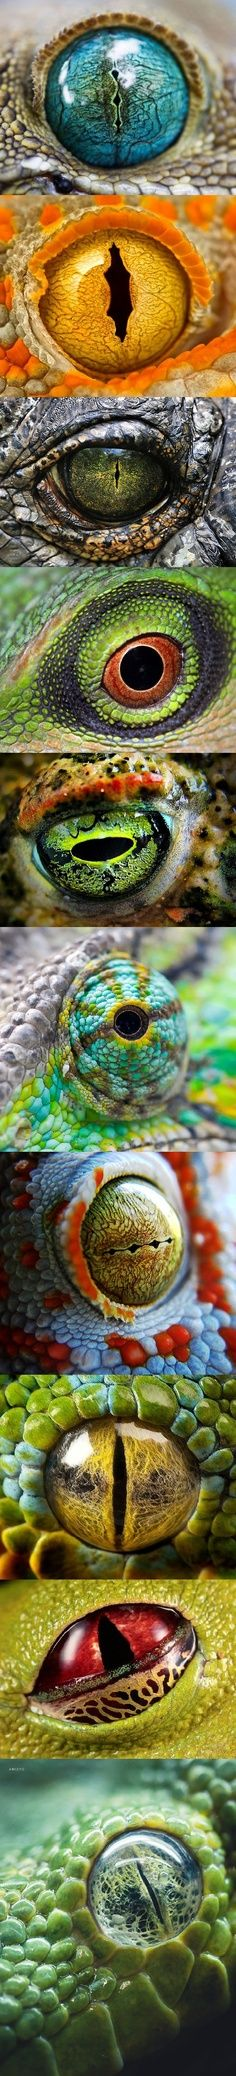 When you take out the elements of fear and unease that I feel regarding reptiles, they're really quite gorgeous